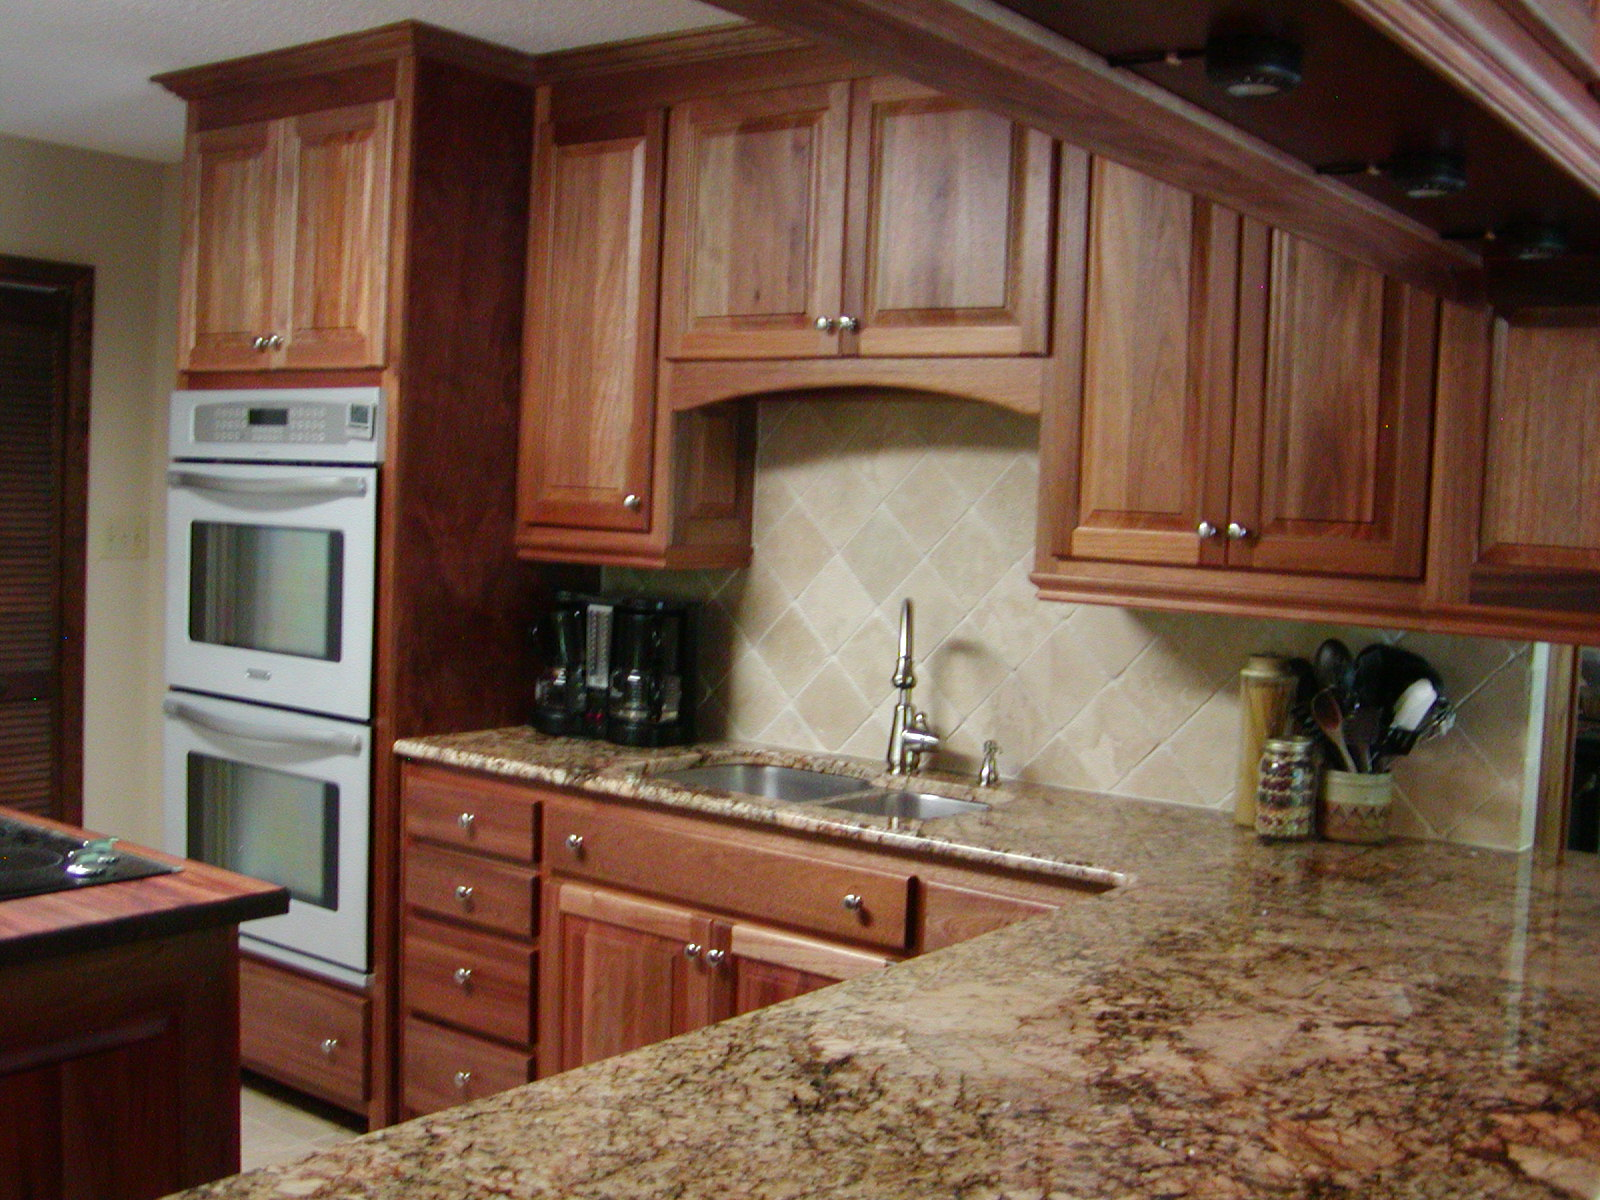 NATURAL MAHOGANY WOOD CABINETRY